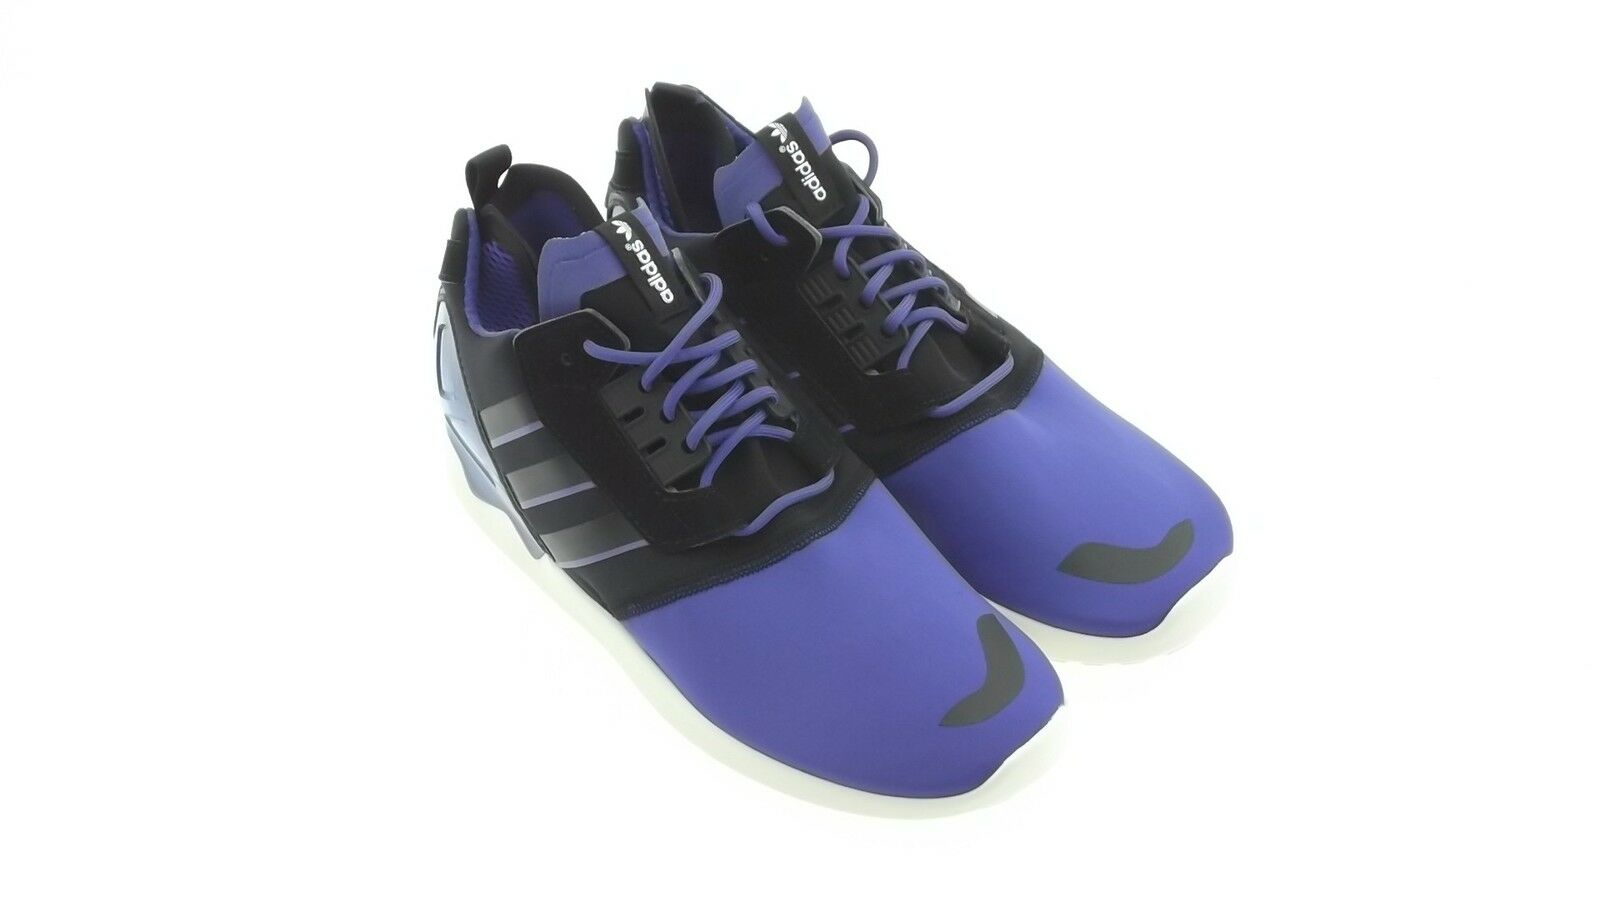 Adidas Men ZX 8000 Boost purple ngtfla black B26370